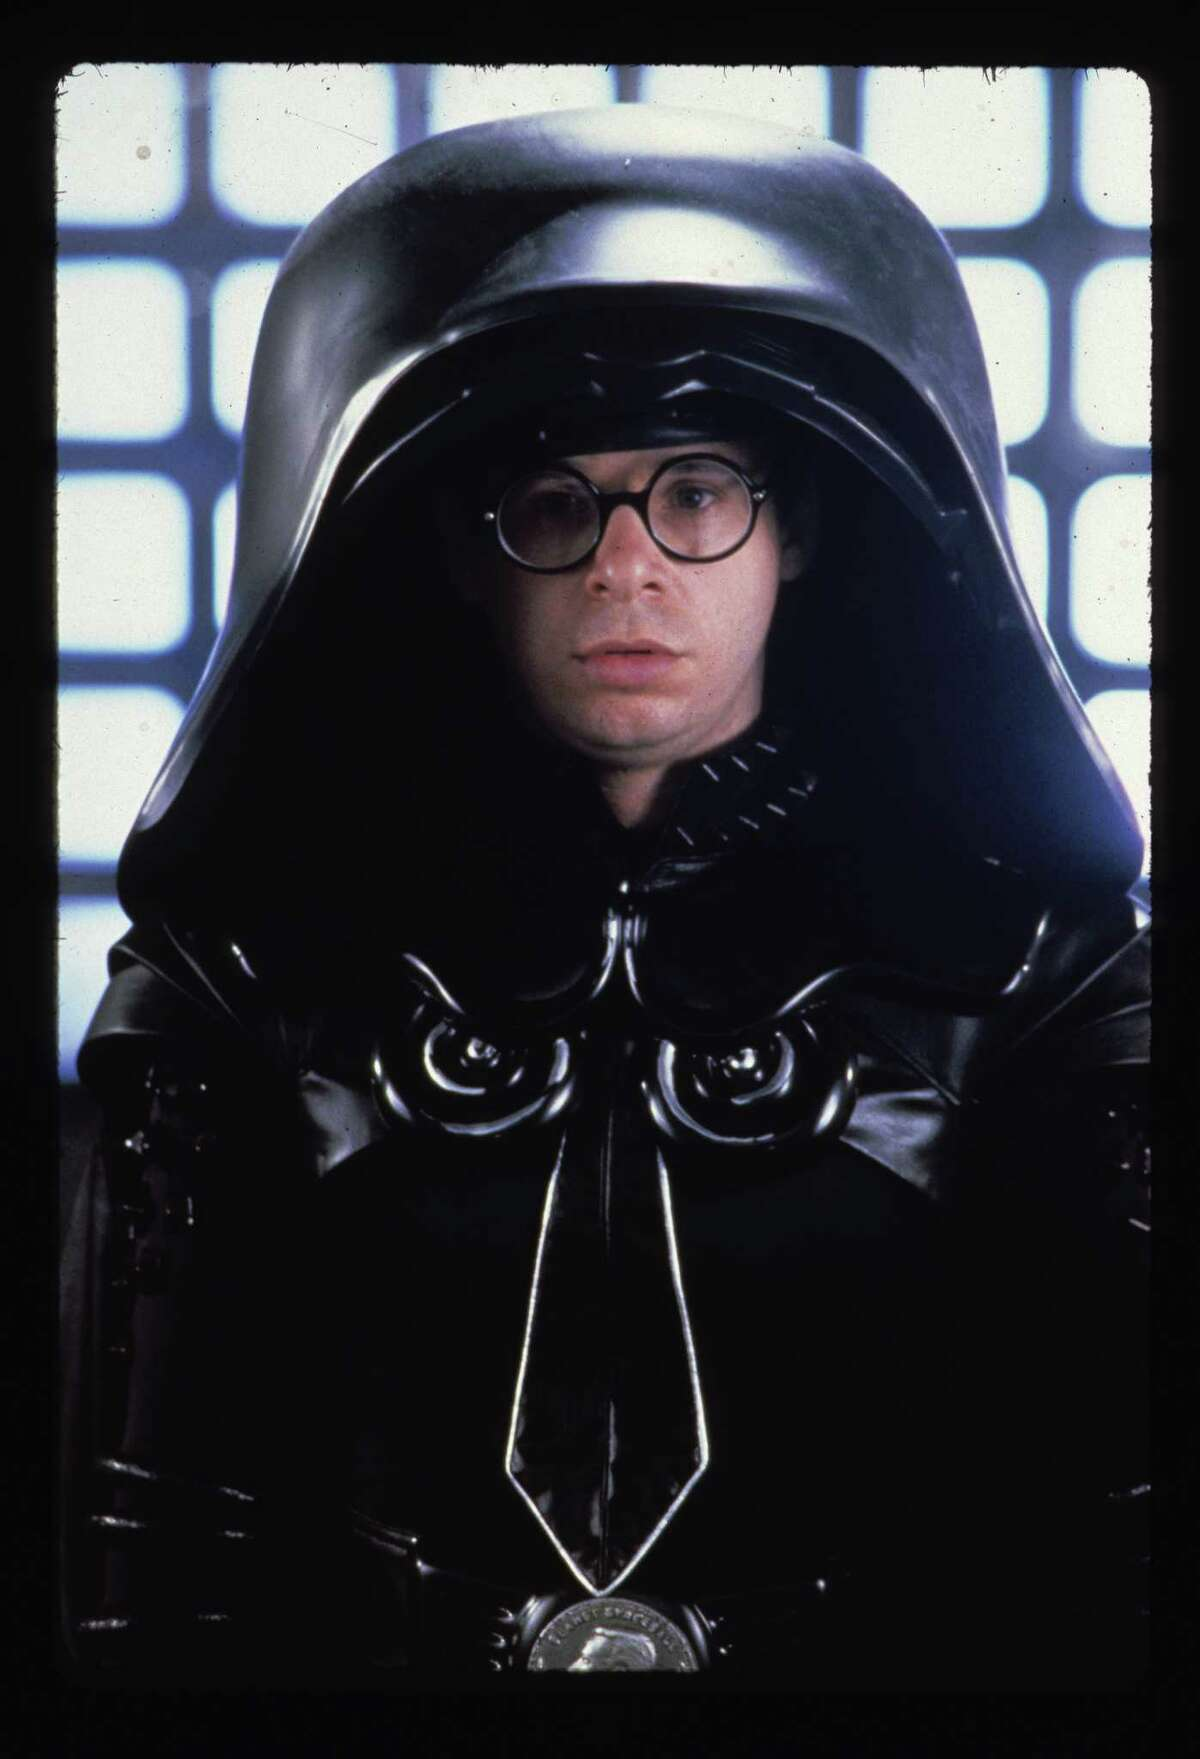 Dark Helmet (Rick Moranis) stars in Spaceballs